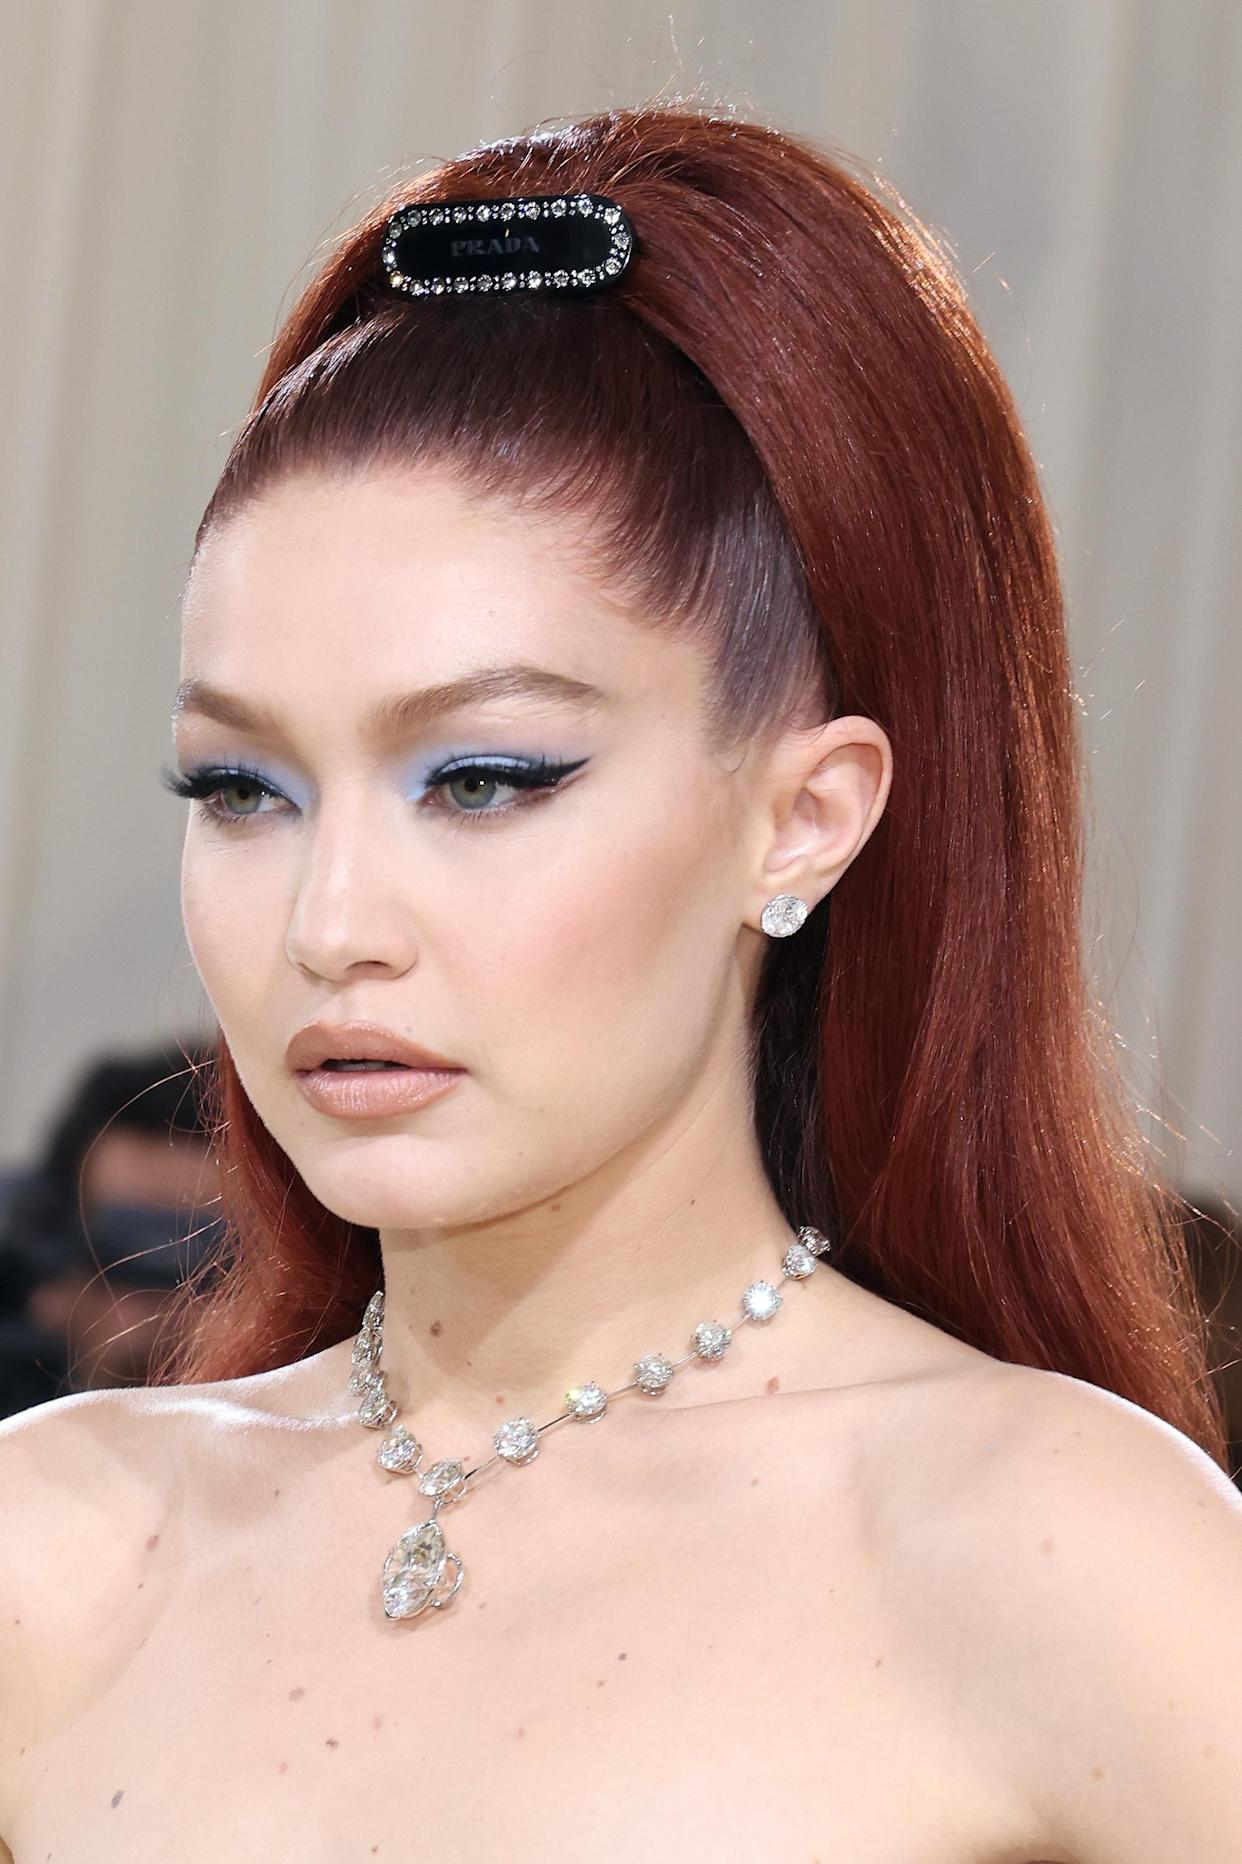 Gigi Hadid boasted a glowing complexion, thanks to Maybelline's affordable concealer at the 2021 Met Gala. (Getty Images)